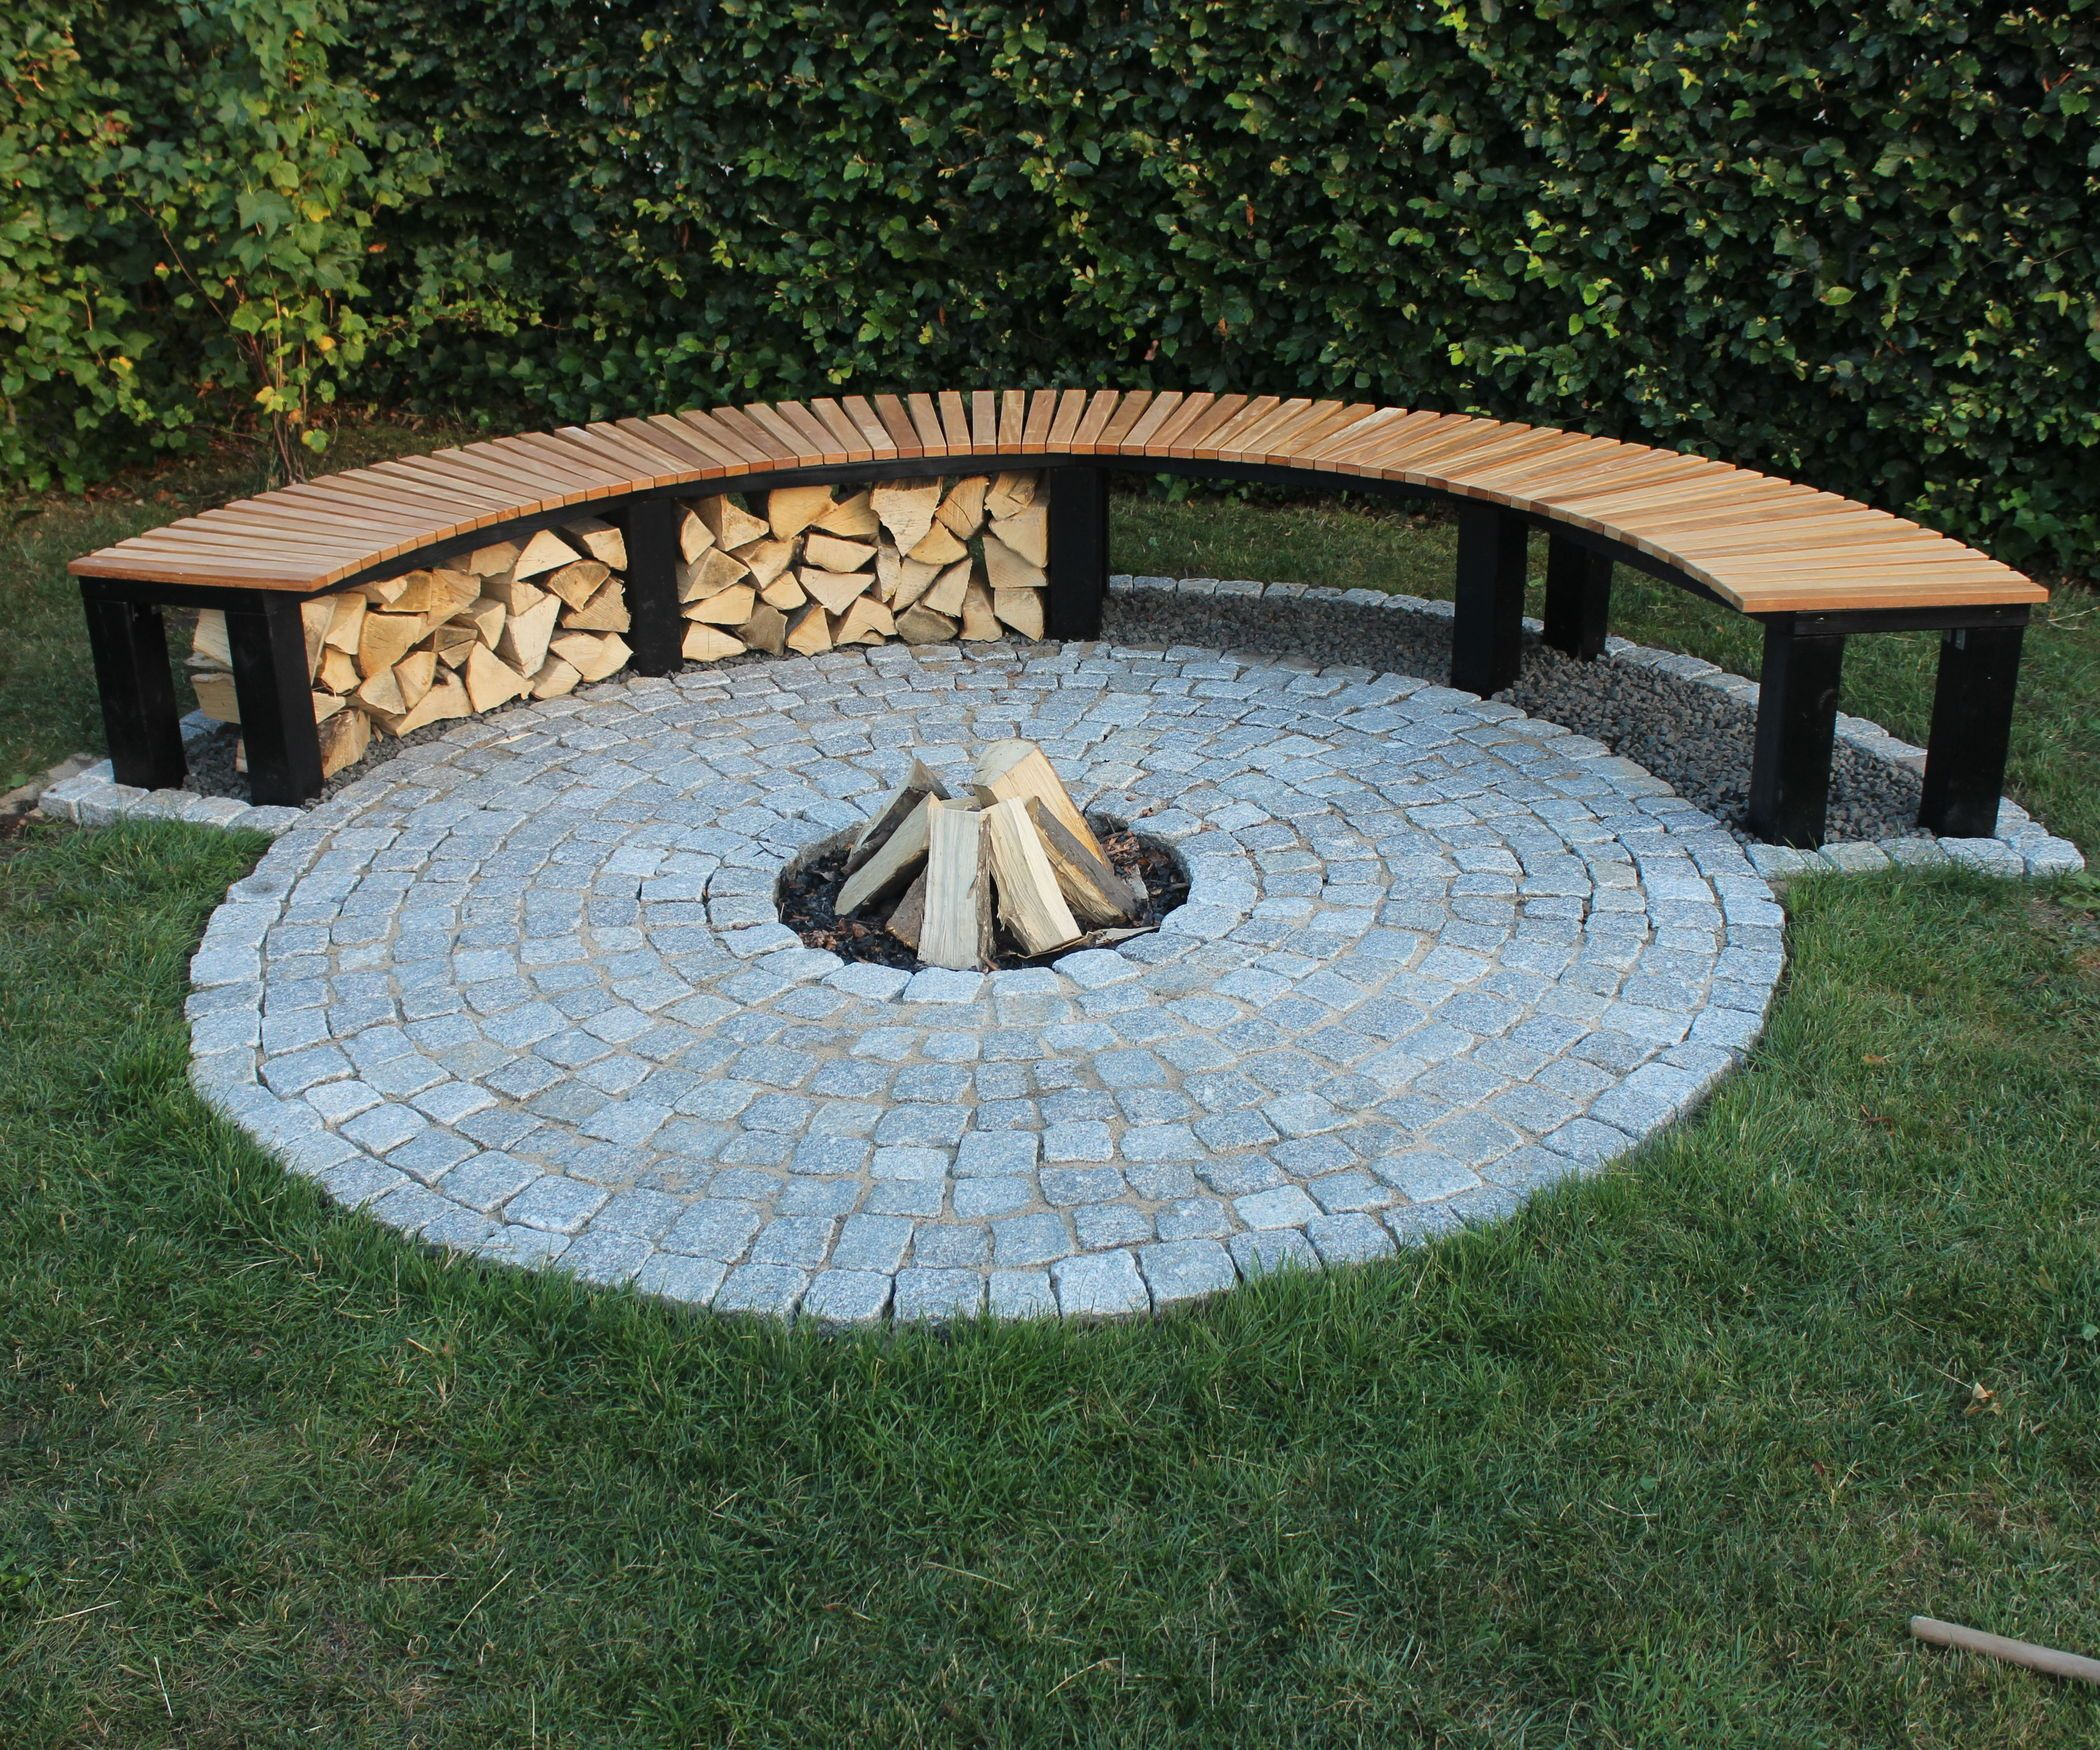 Garden Fireplace With Bench Backyard Outdoor Fire Outdoor Fire Pit